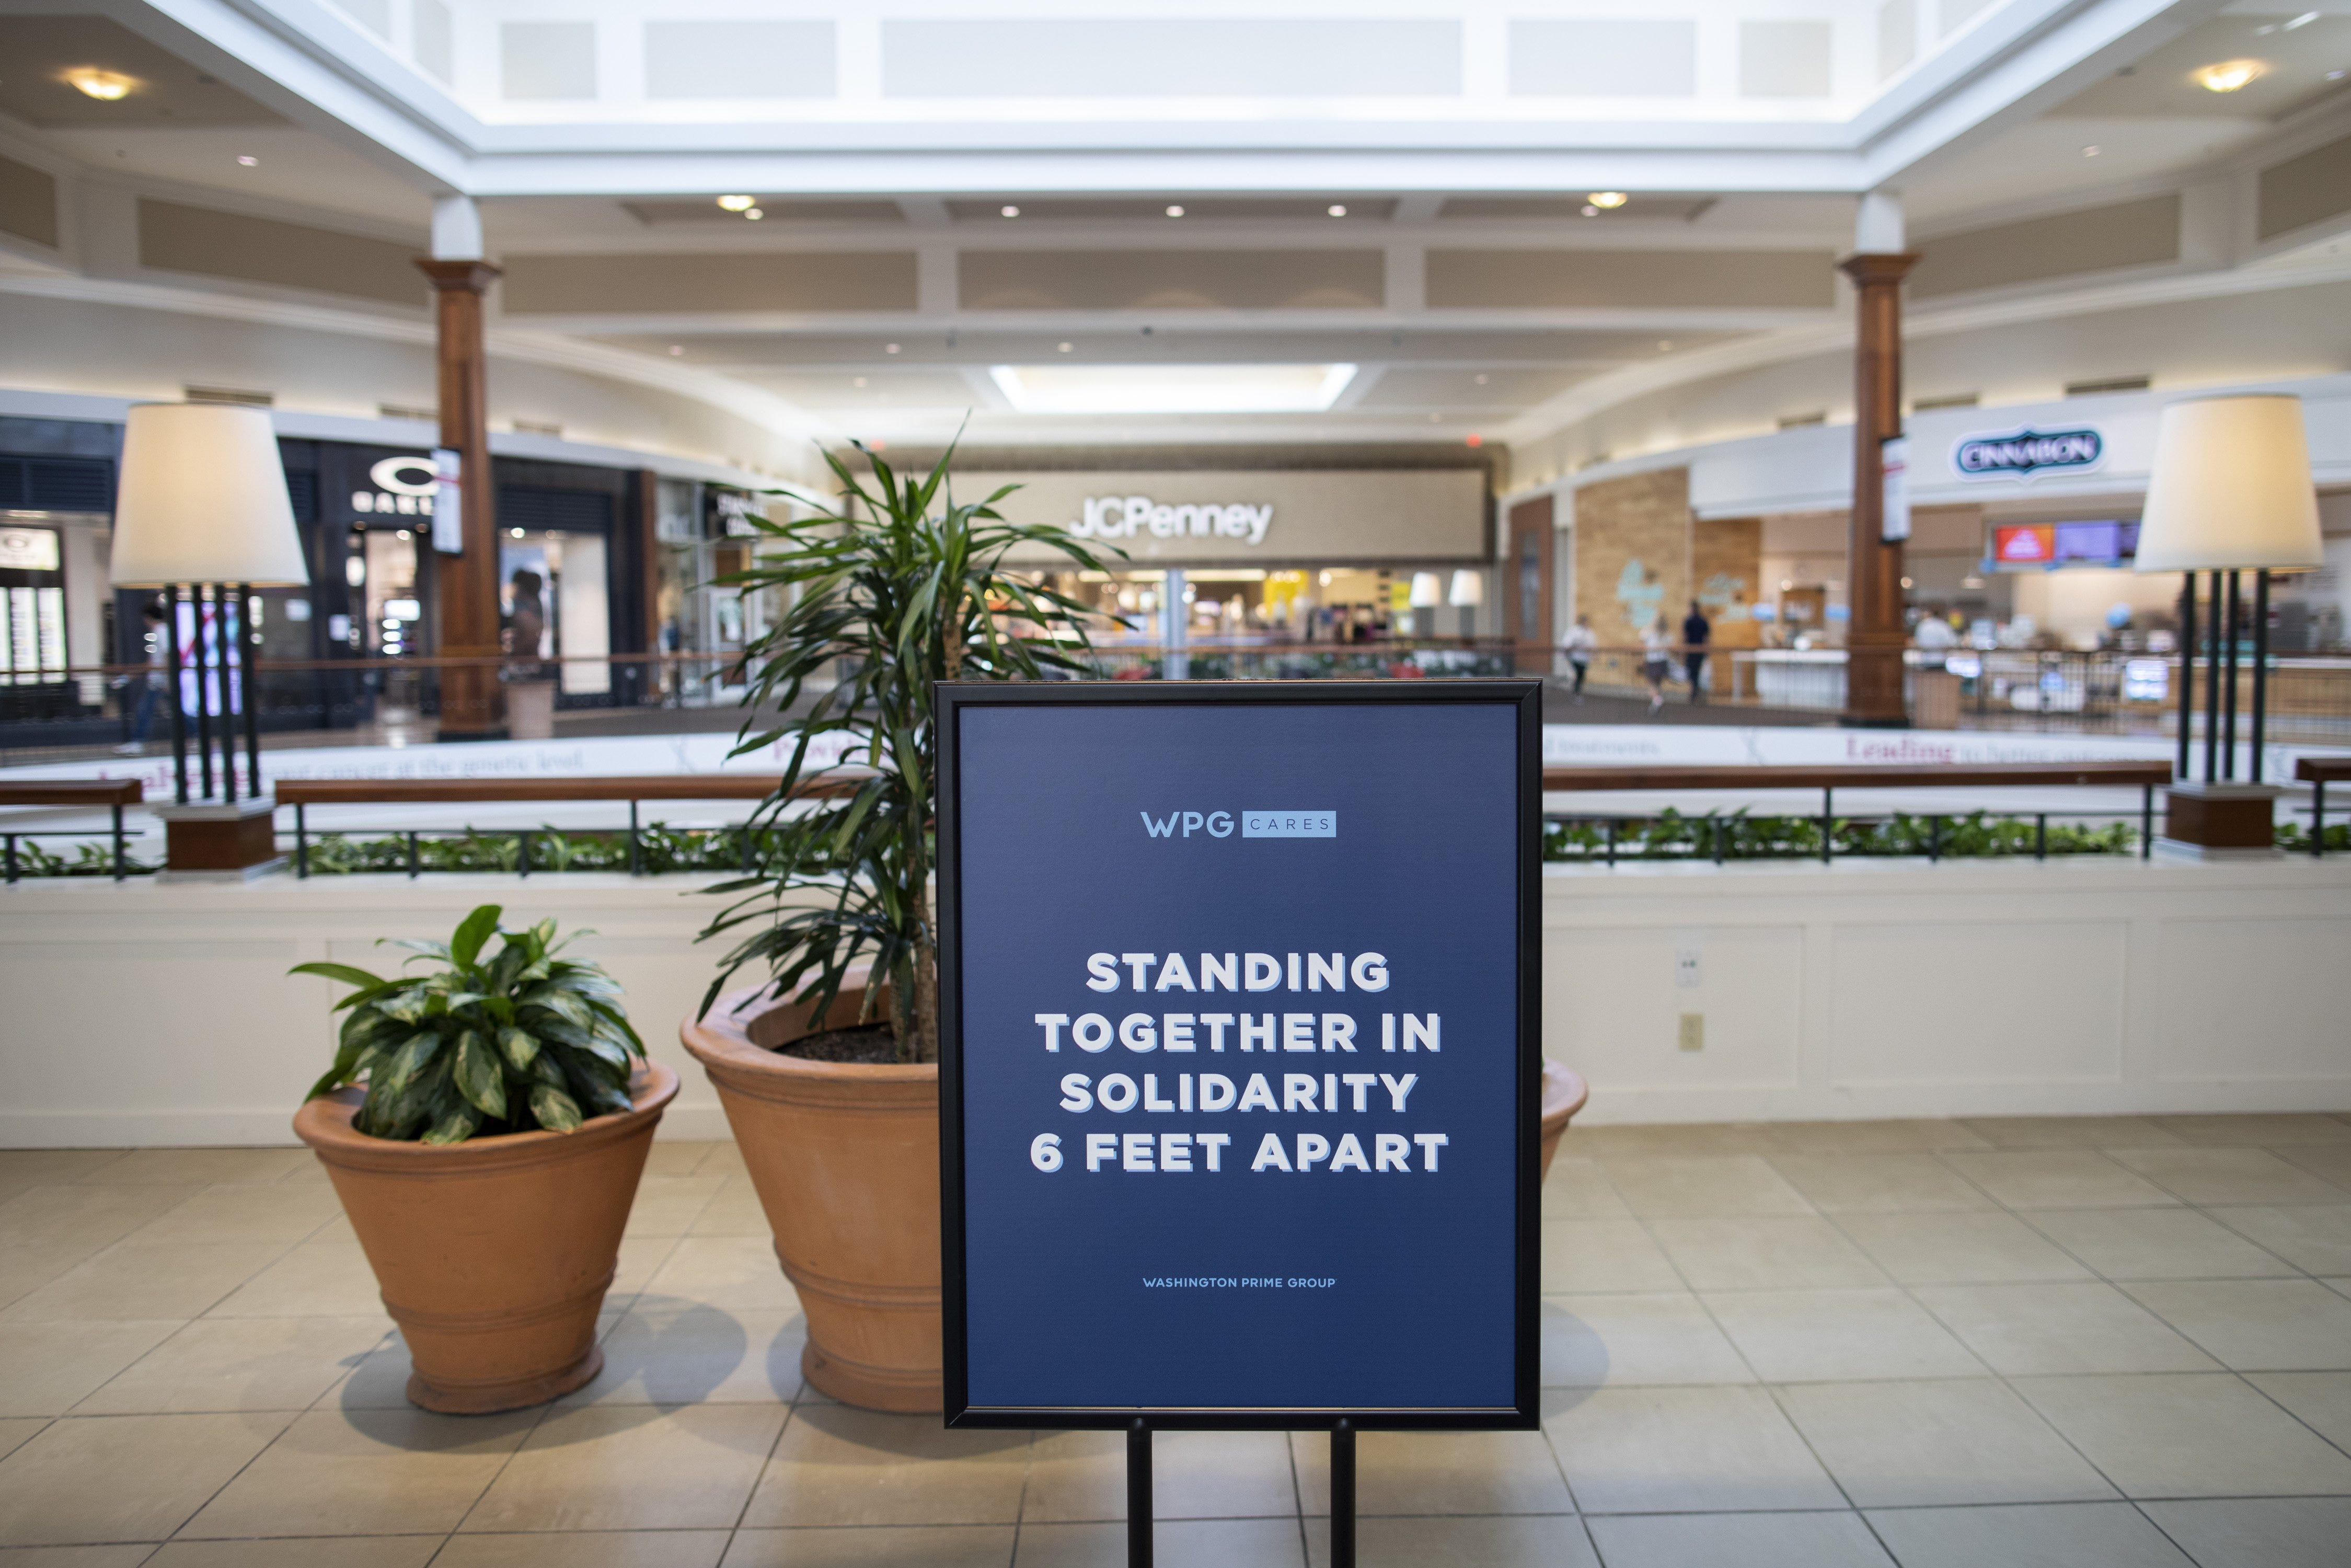 Washington Prime Group bankruptcy: Mall operator files for Chapter 11